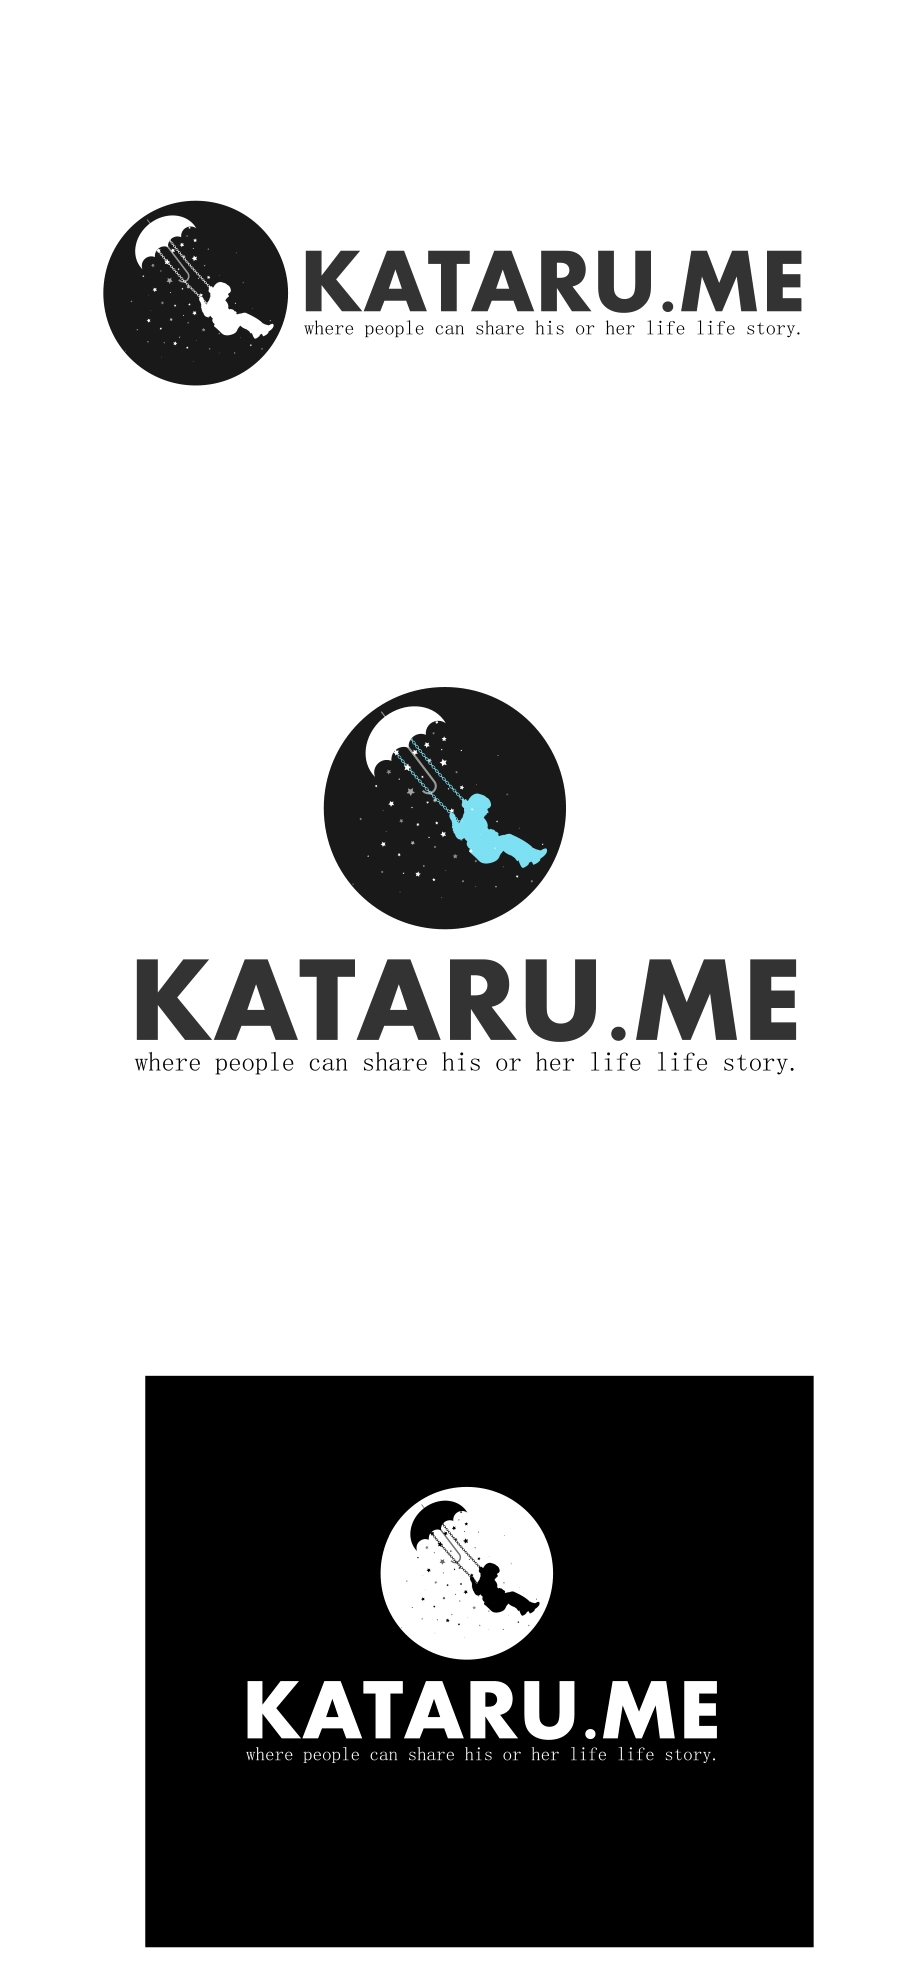 Logo Design by Private User - Entry No. 14 in the Logo Design Contest Inspiring Logo Design for KATARU.ME.